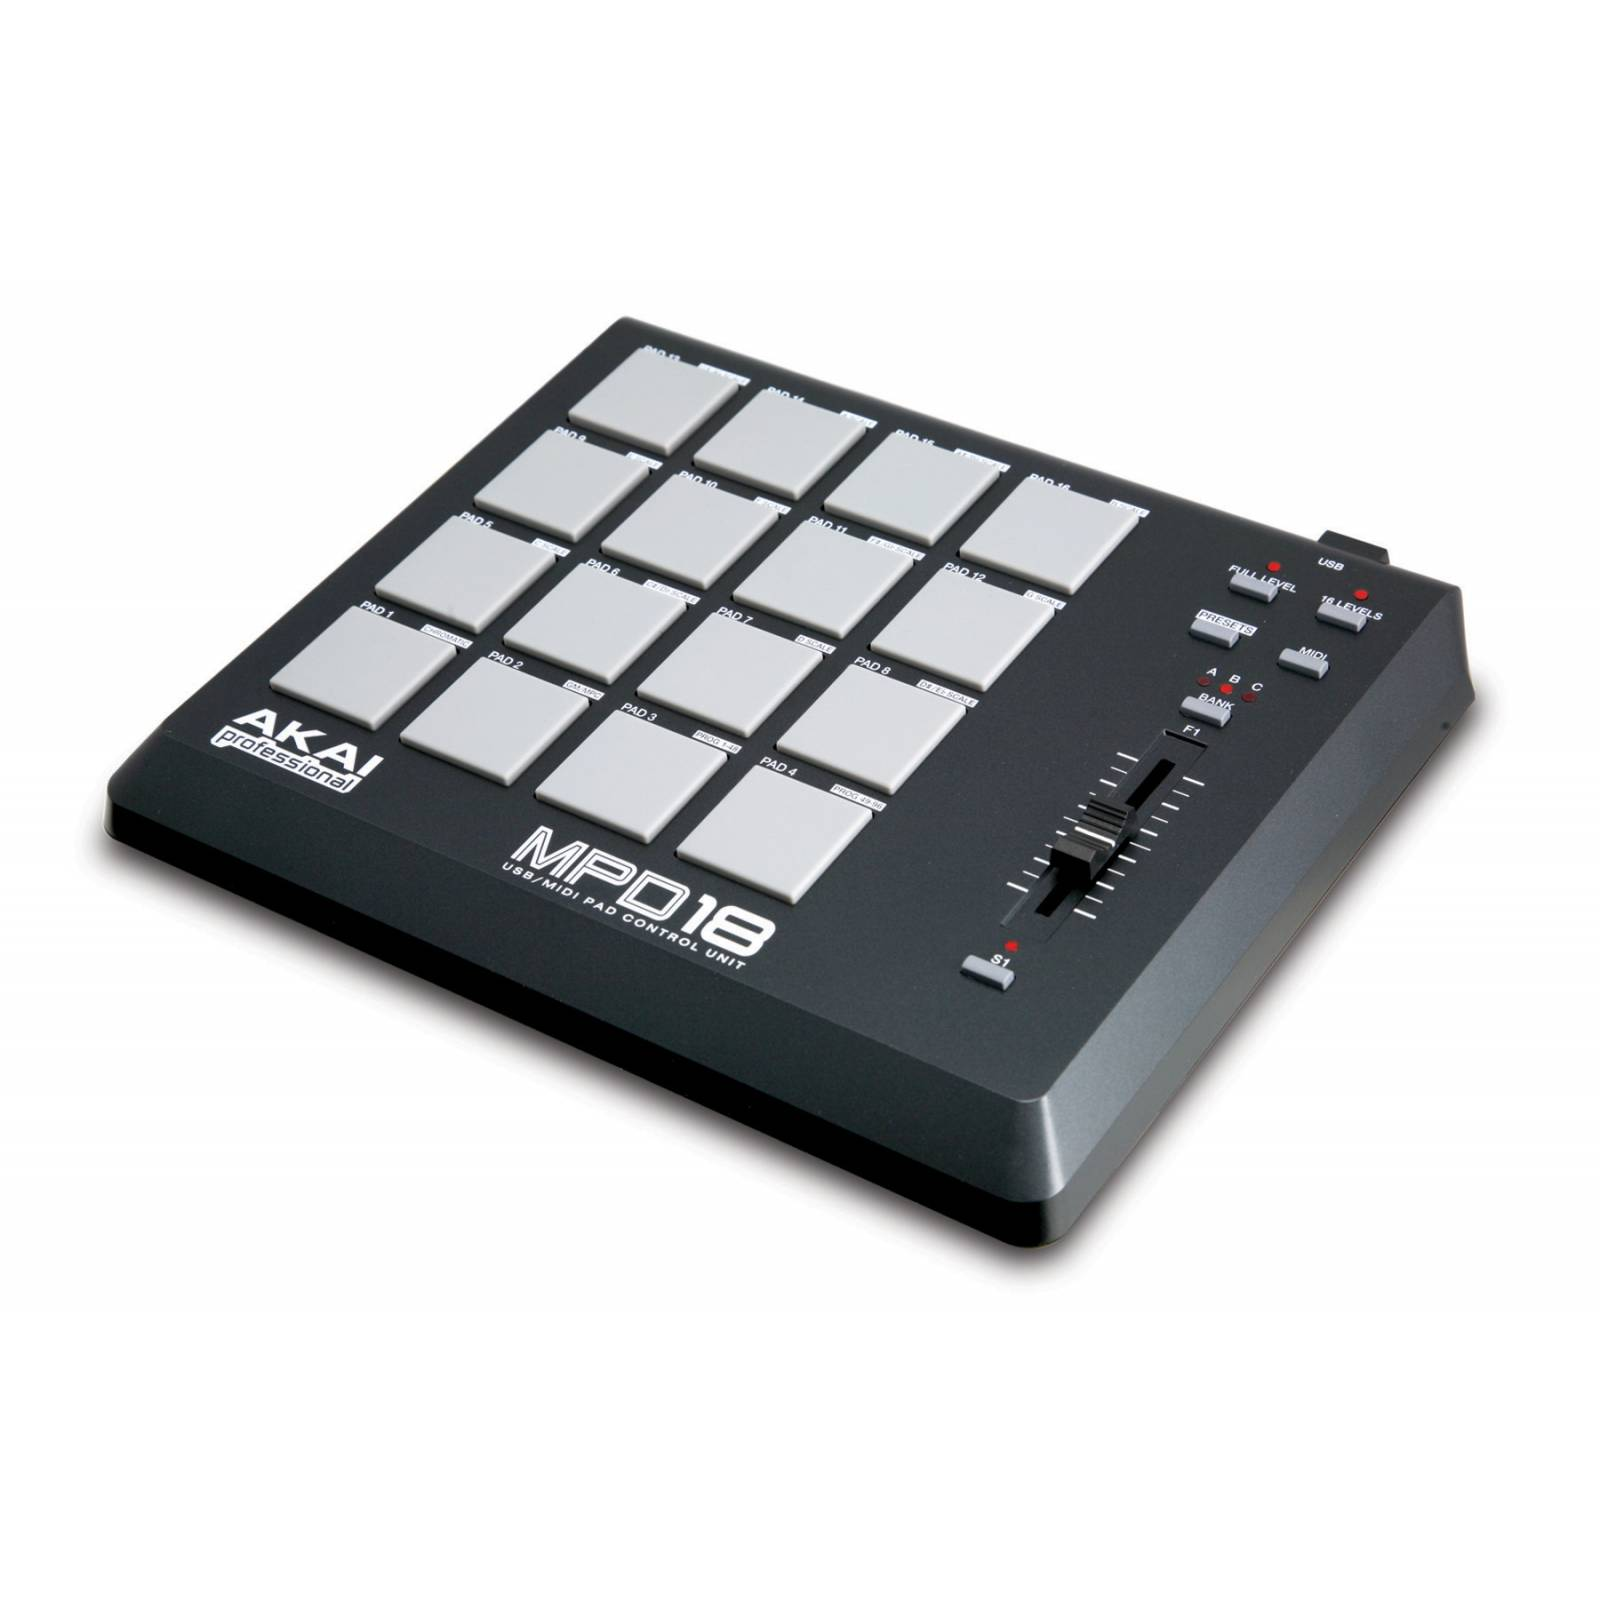 akai mpd18 midi usb pad controller midi controllers from inta audio uk. Black Bedroom Furniture Sets. Home Design Ideas